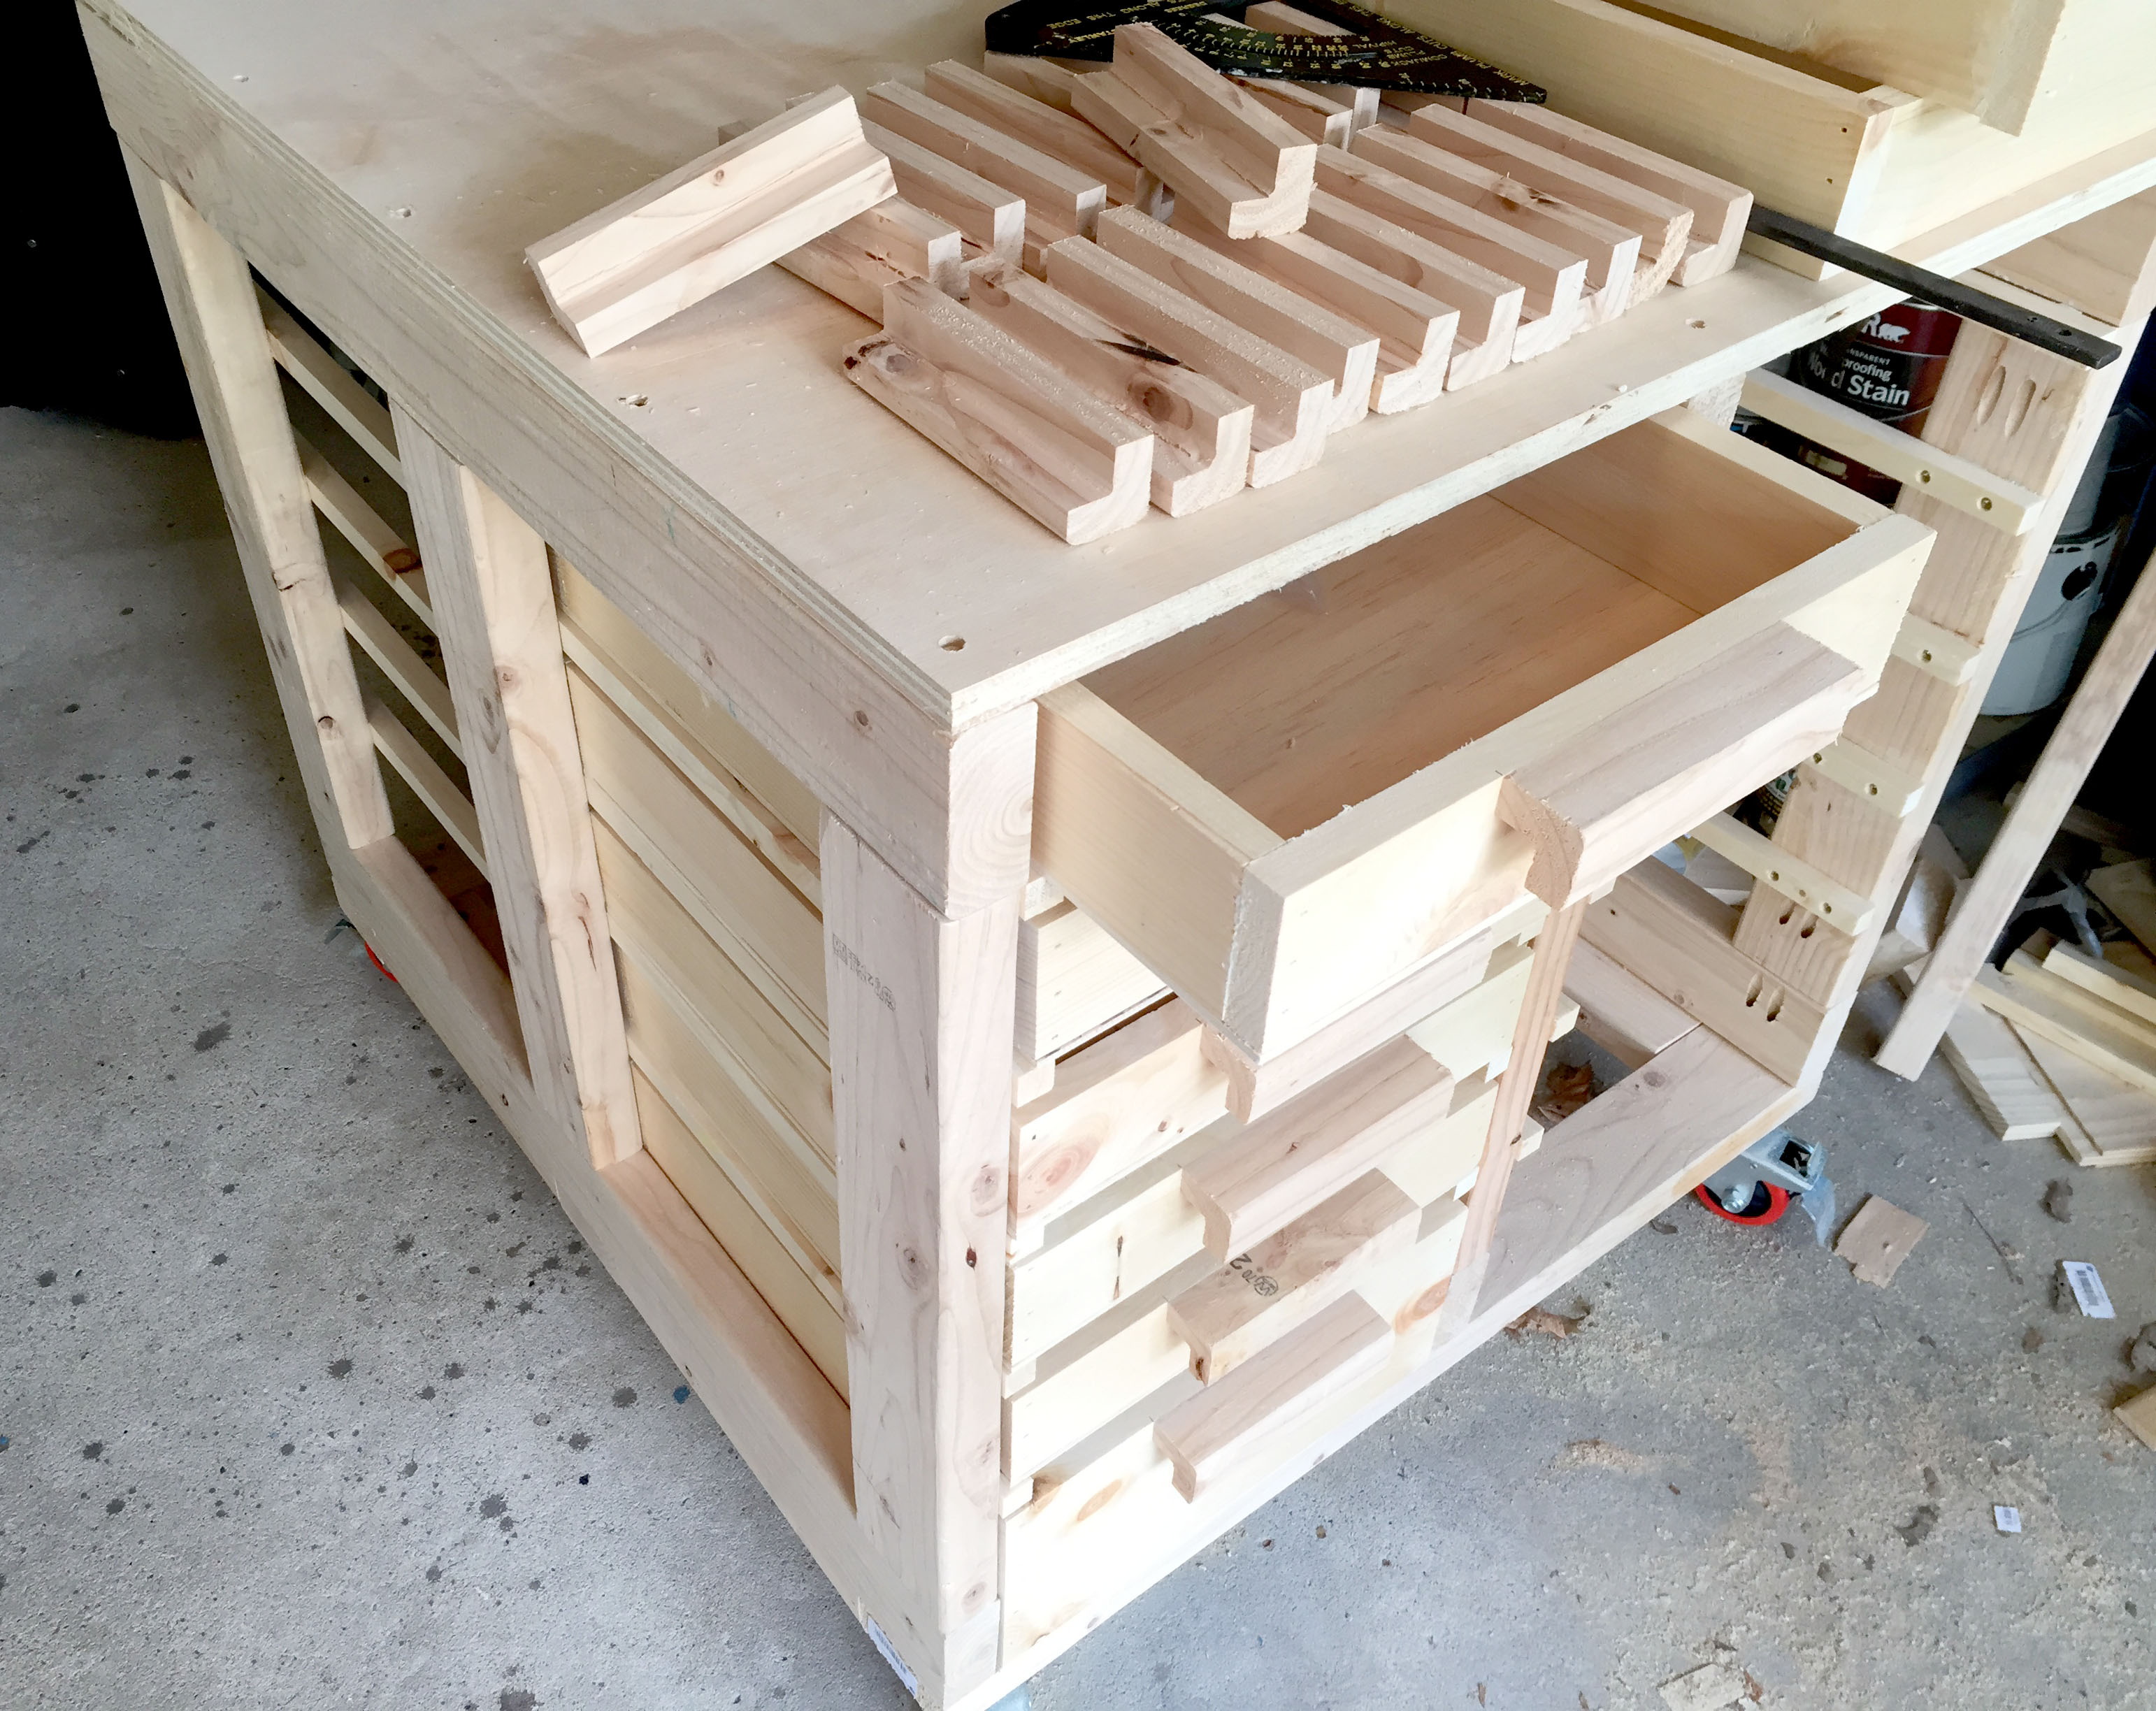 How to make diy drawers with homemade handles